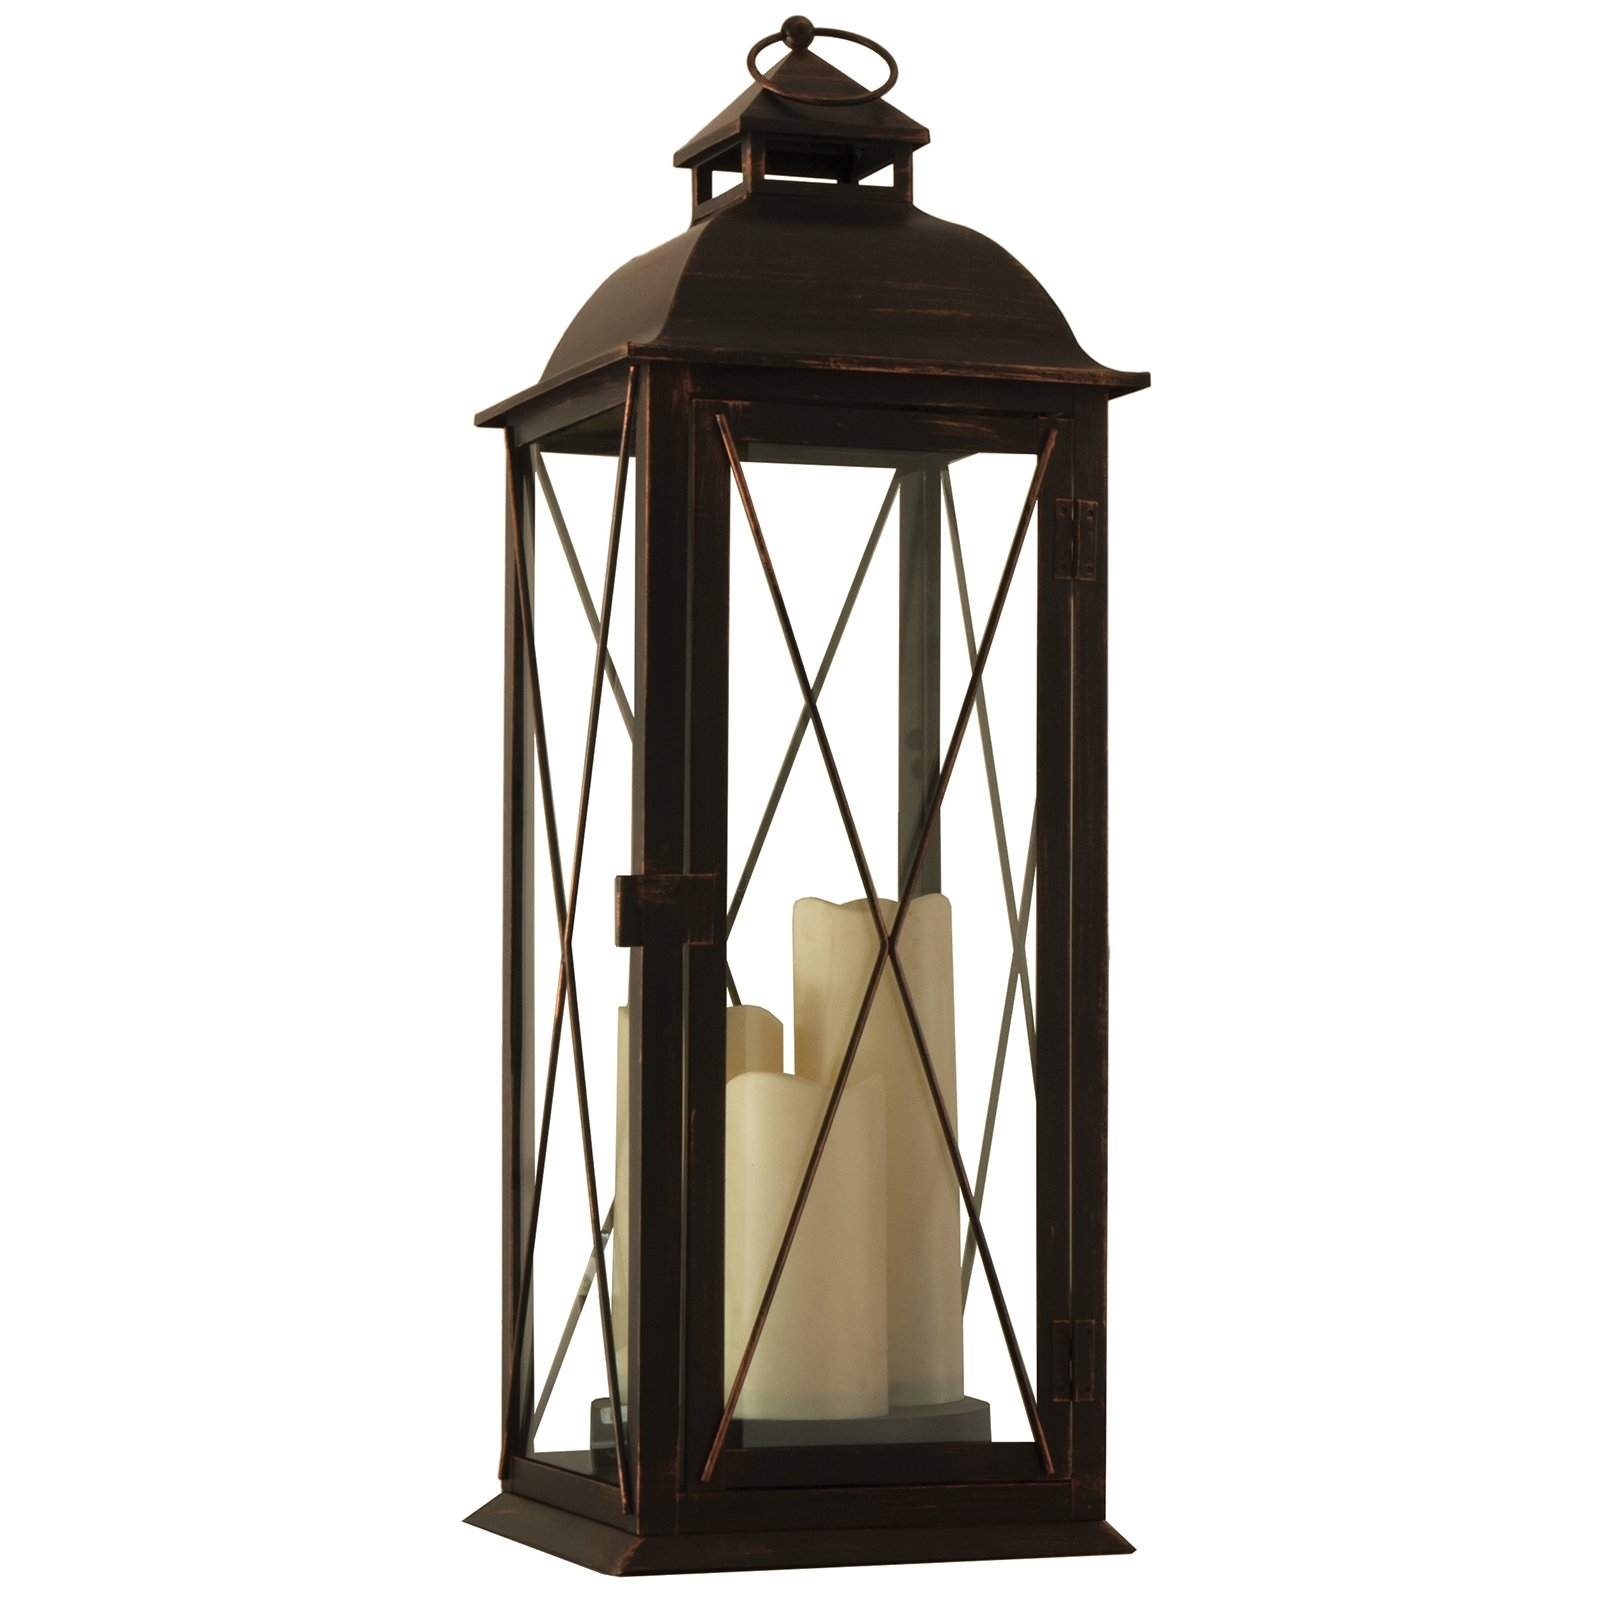 Outdoor Lanterns With Led Candles Within Well Liked Smart Design Salerno Triple Candle Led Lantern W/ On Off Timer (View 17 of 20)